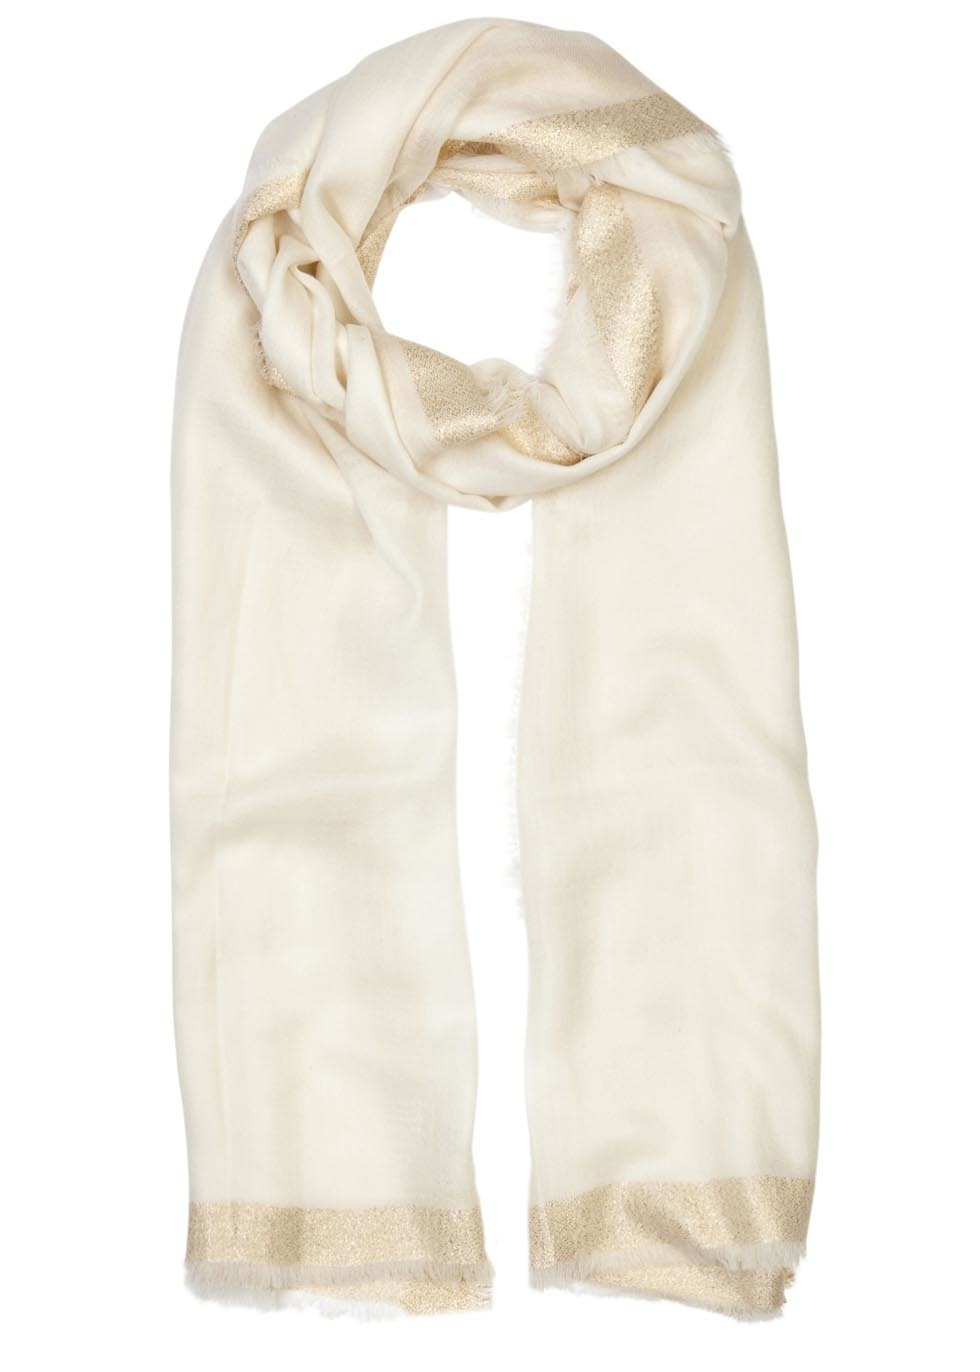 Cream And Gold Wool Blend Scarf - predominant colour: ivory/cream; occasions: casual, creative work; type of pattern: standard; style: regular; size: standard; material: fabric; pattern: plain; season: s/s 2016; wardrobe: basic